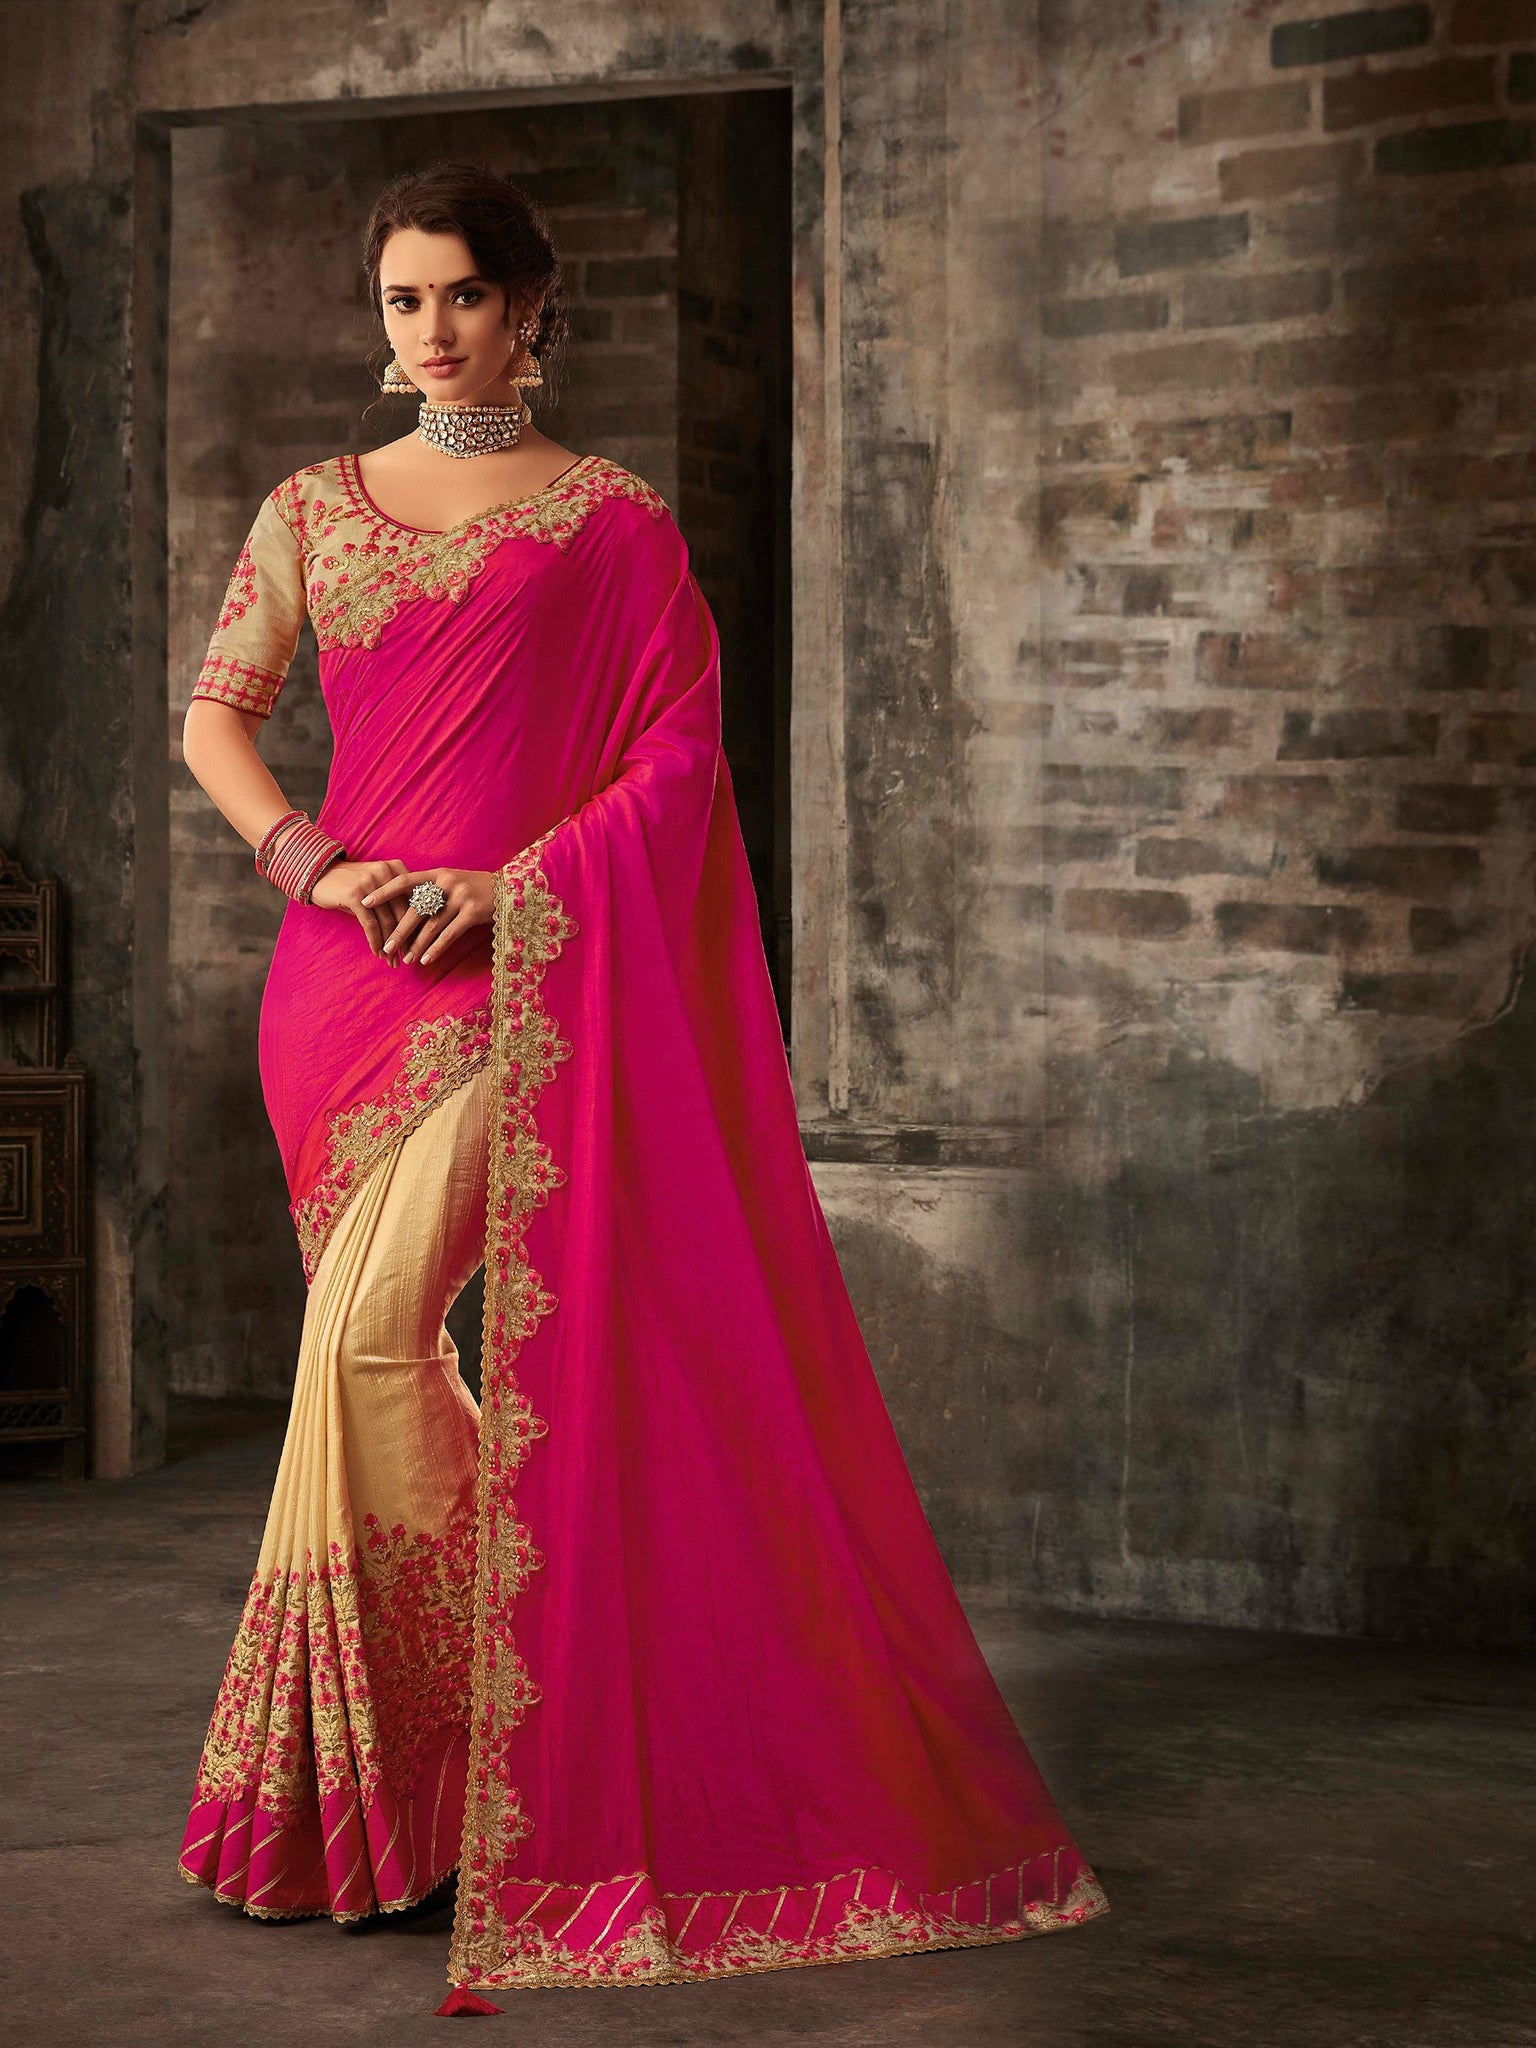 Ethnic RA21610 Designer Pink Beige Golden Silk Saree - Fashion Nation